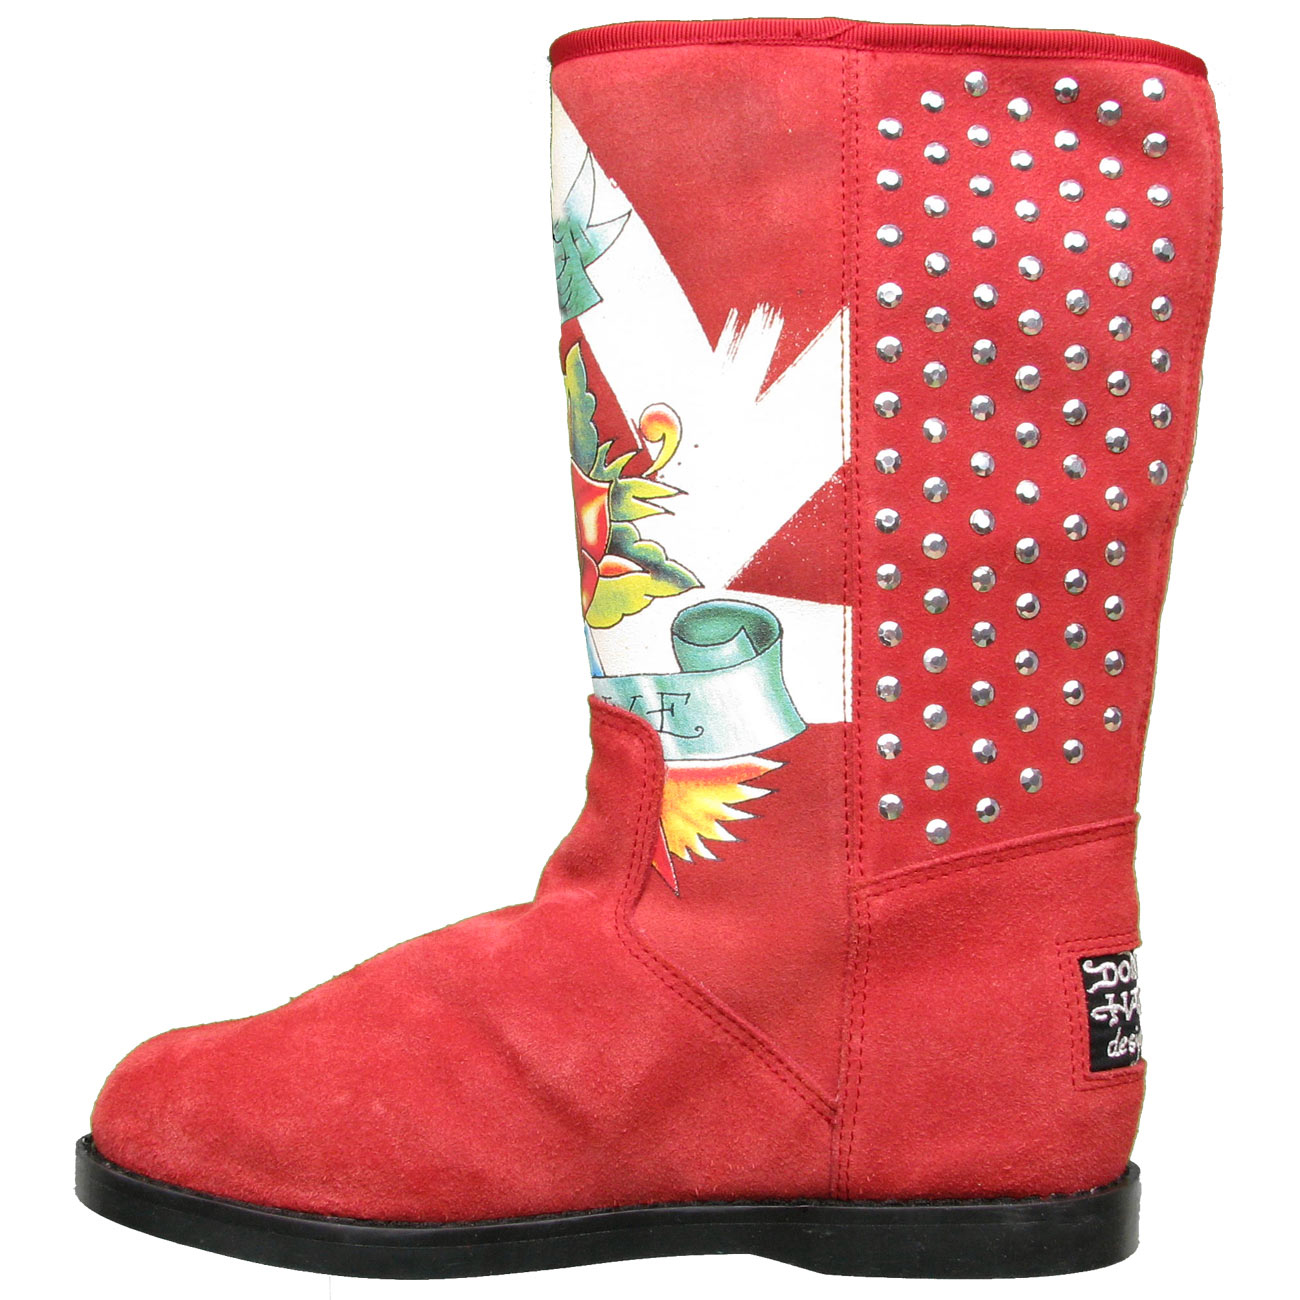 Ed Hardy Bootstrap Boots for Kids Girls- Burgundy